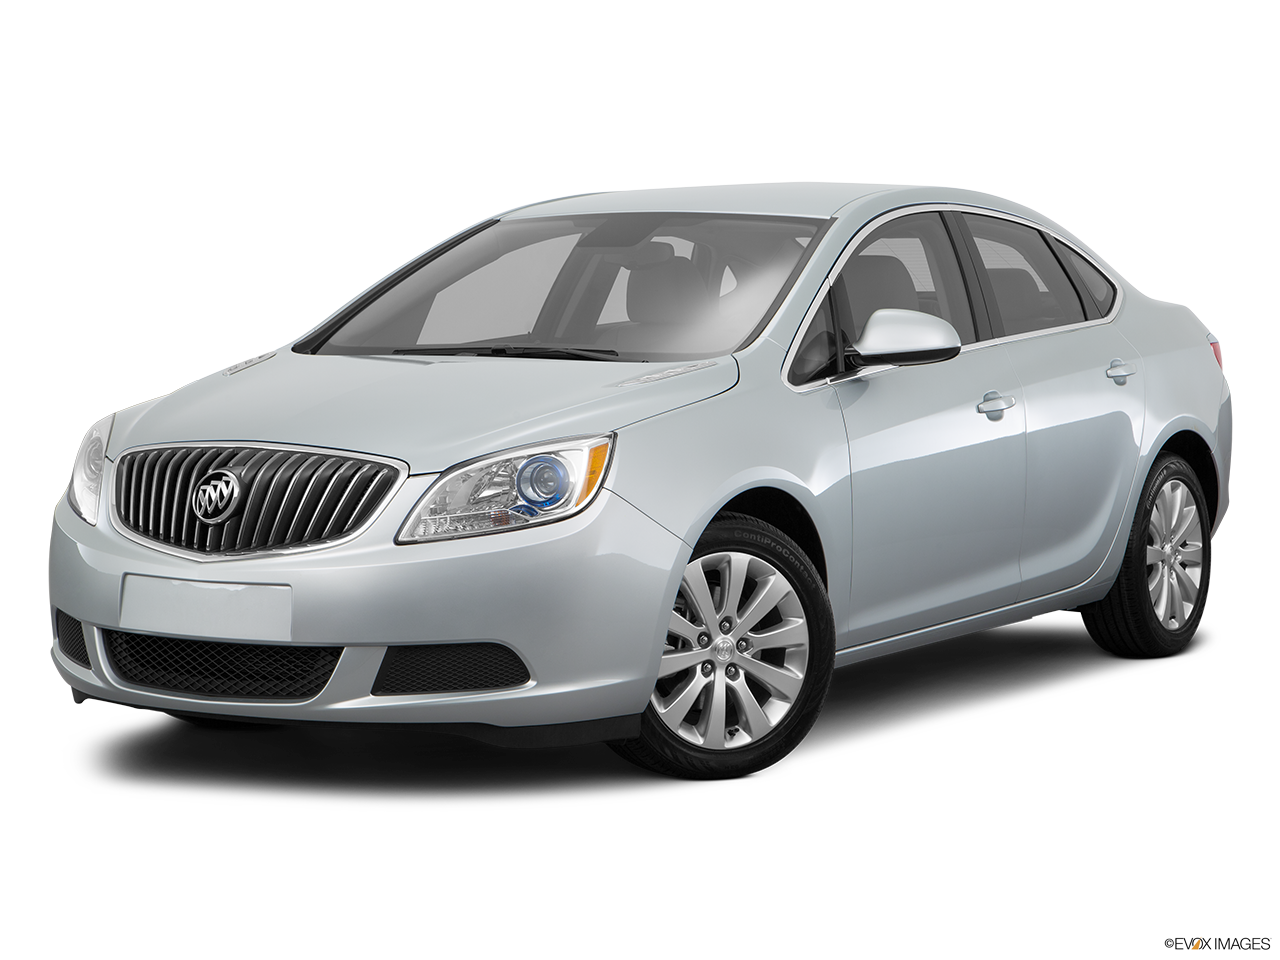 2016 Buick Verano dealer In Orange County | Hardin Buick GMC